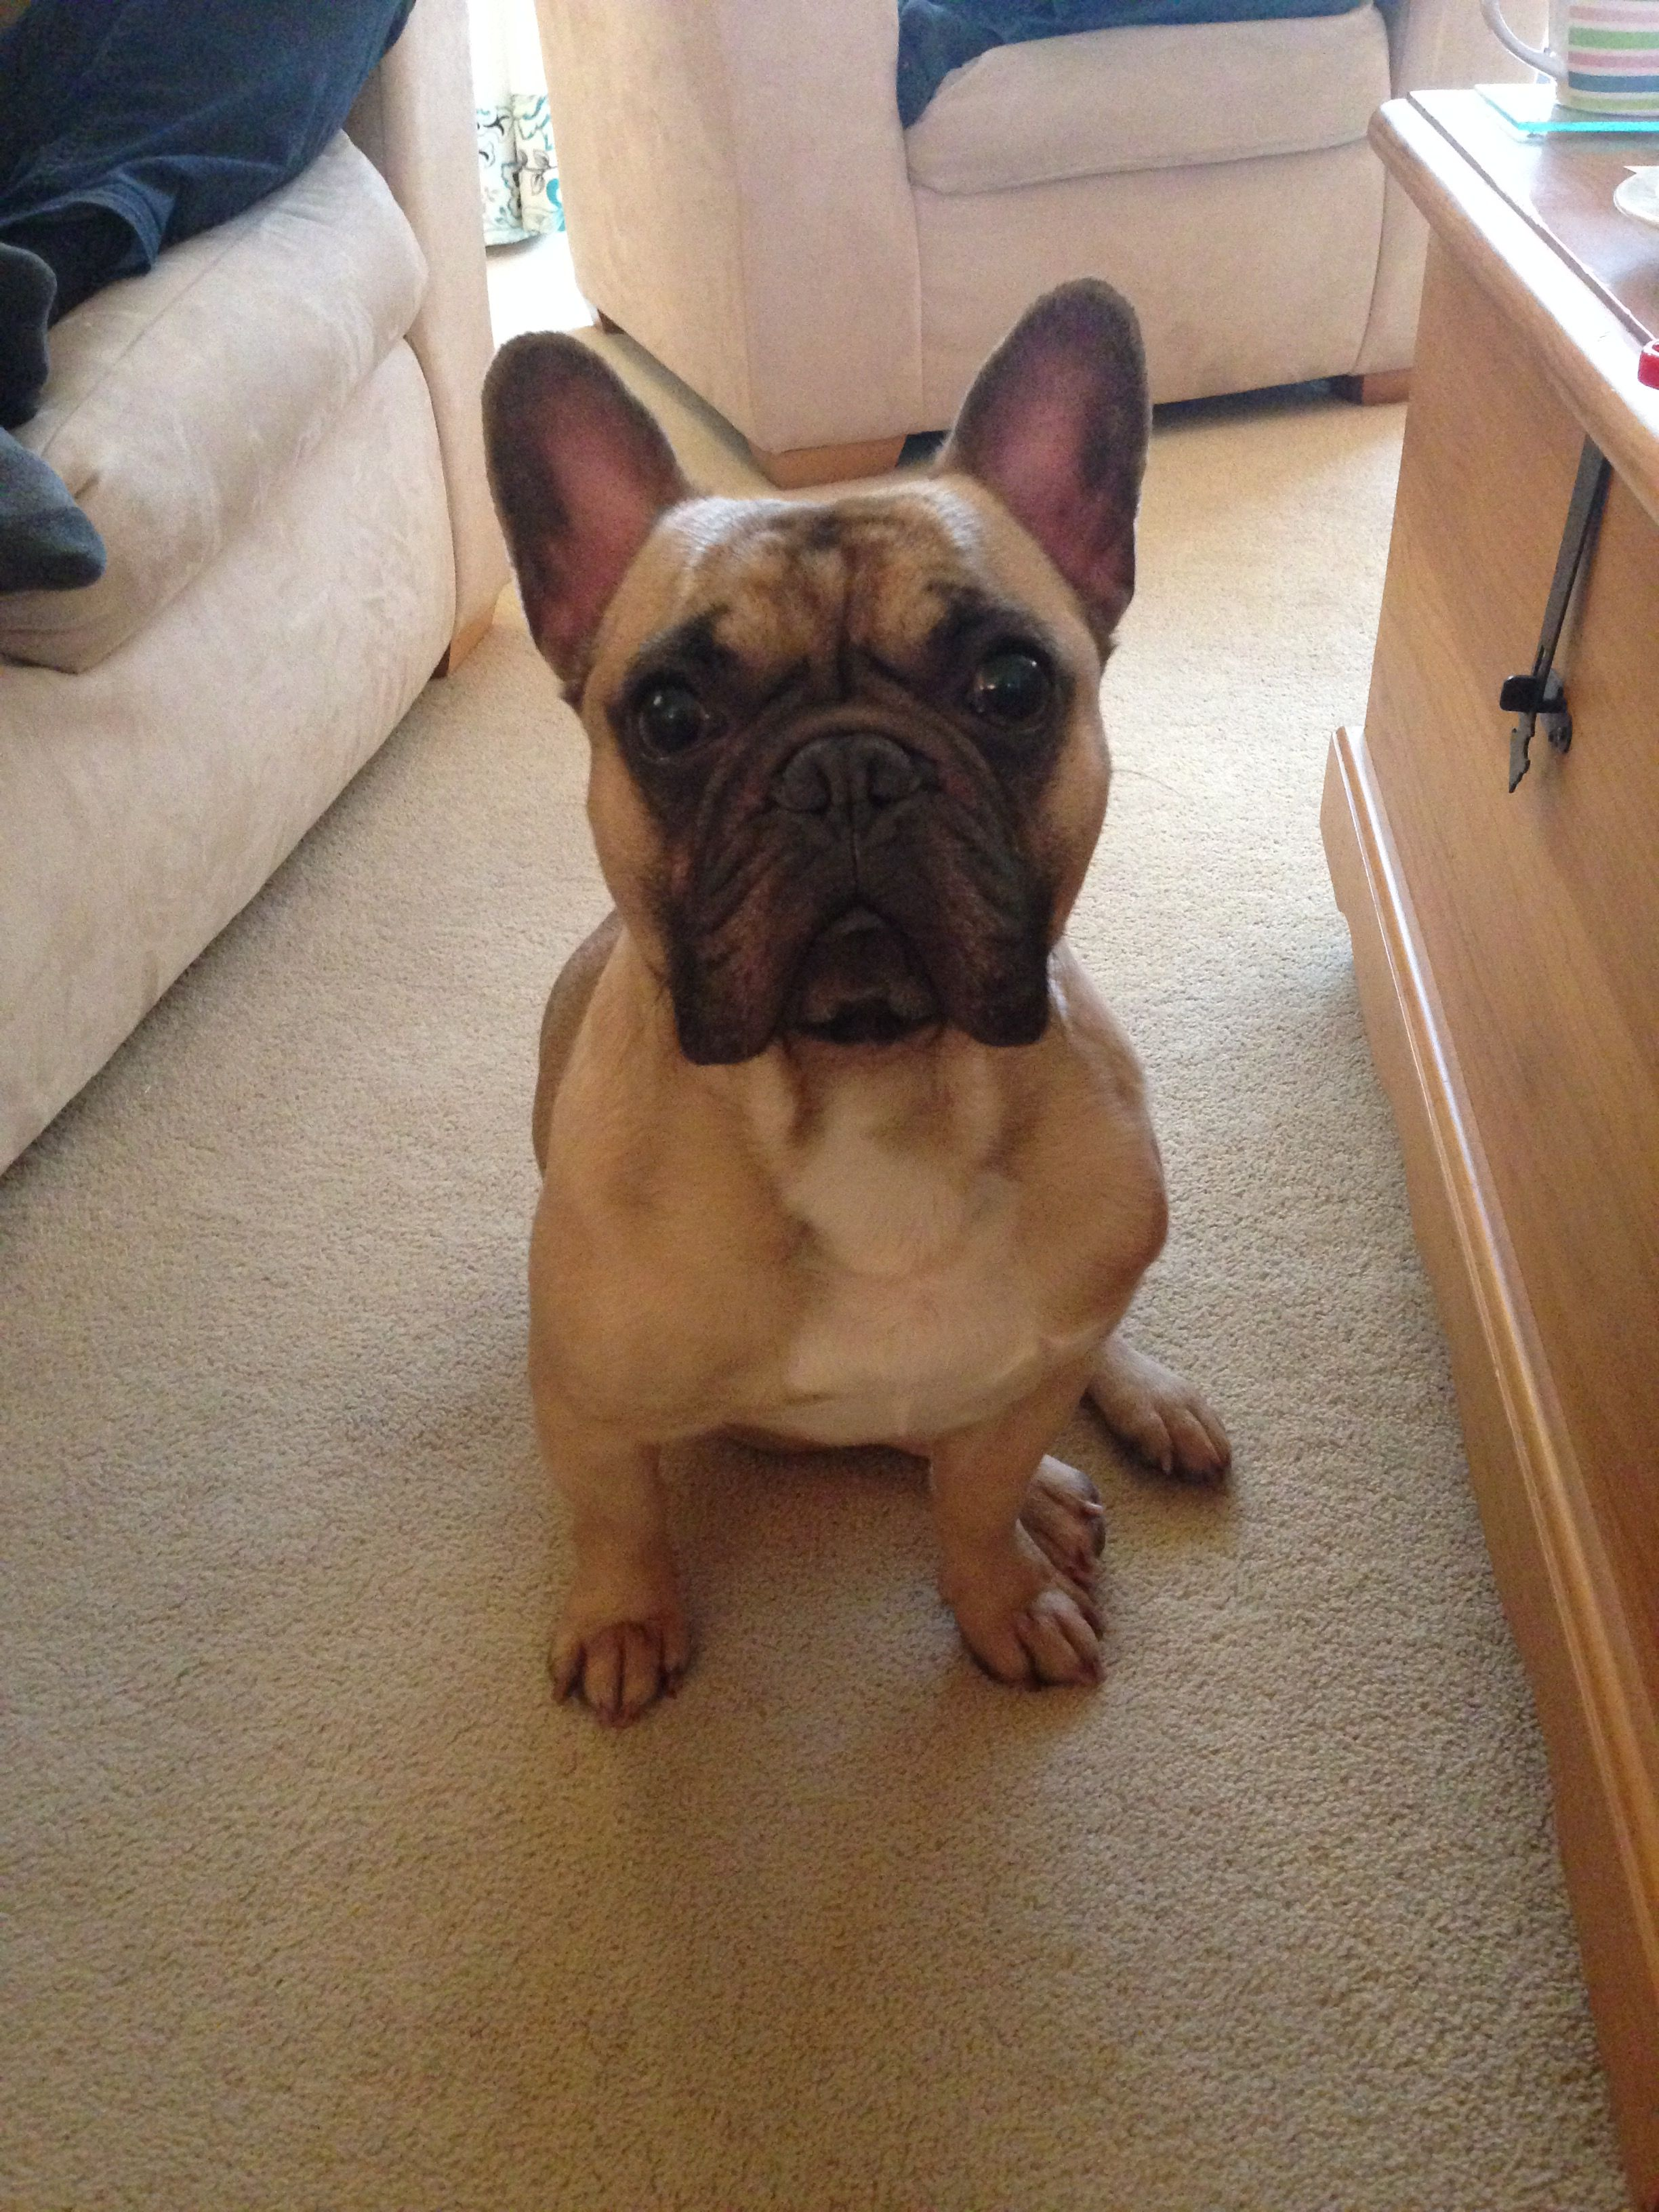 Pin By Alicia Warr On Henry The Adorable French Bulldog Cute